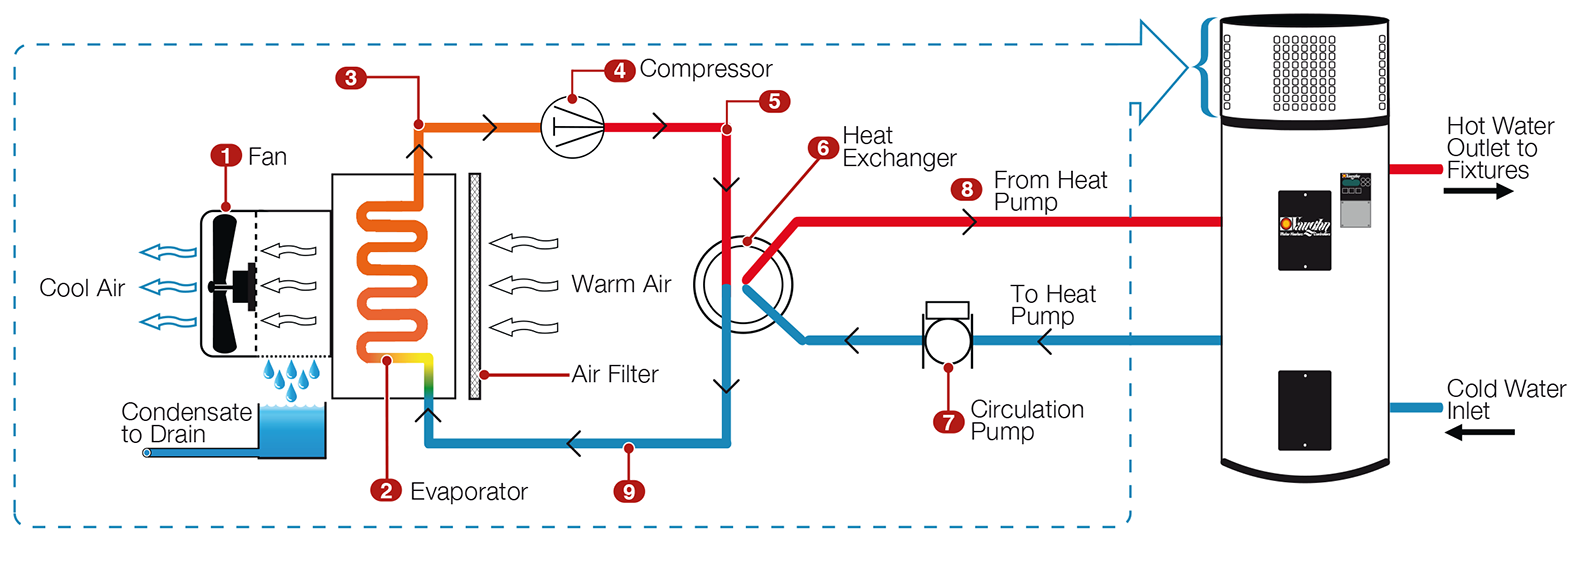 Heat Pump Operational Diagram